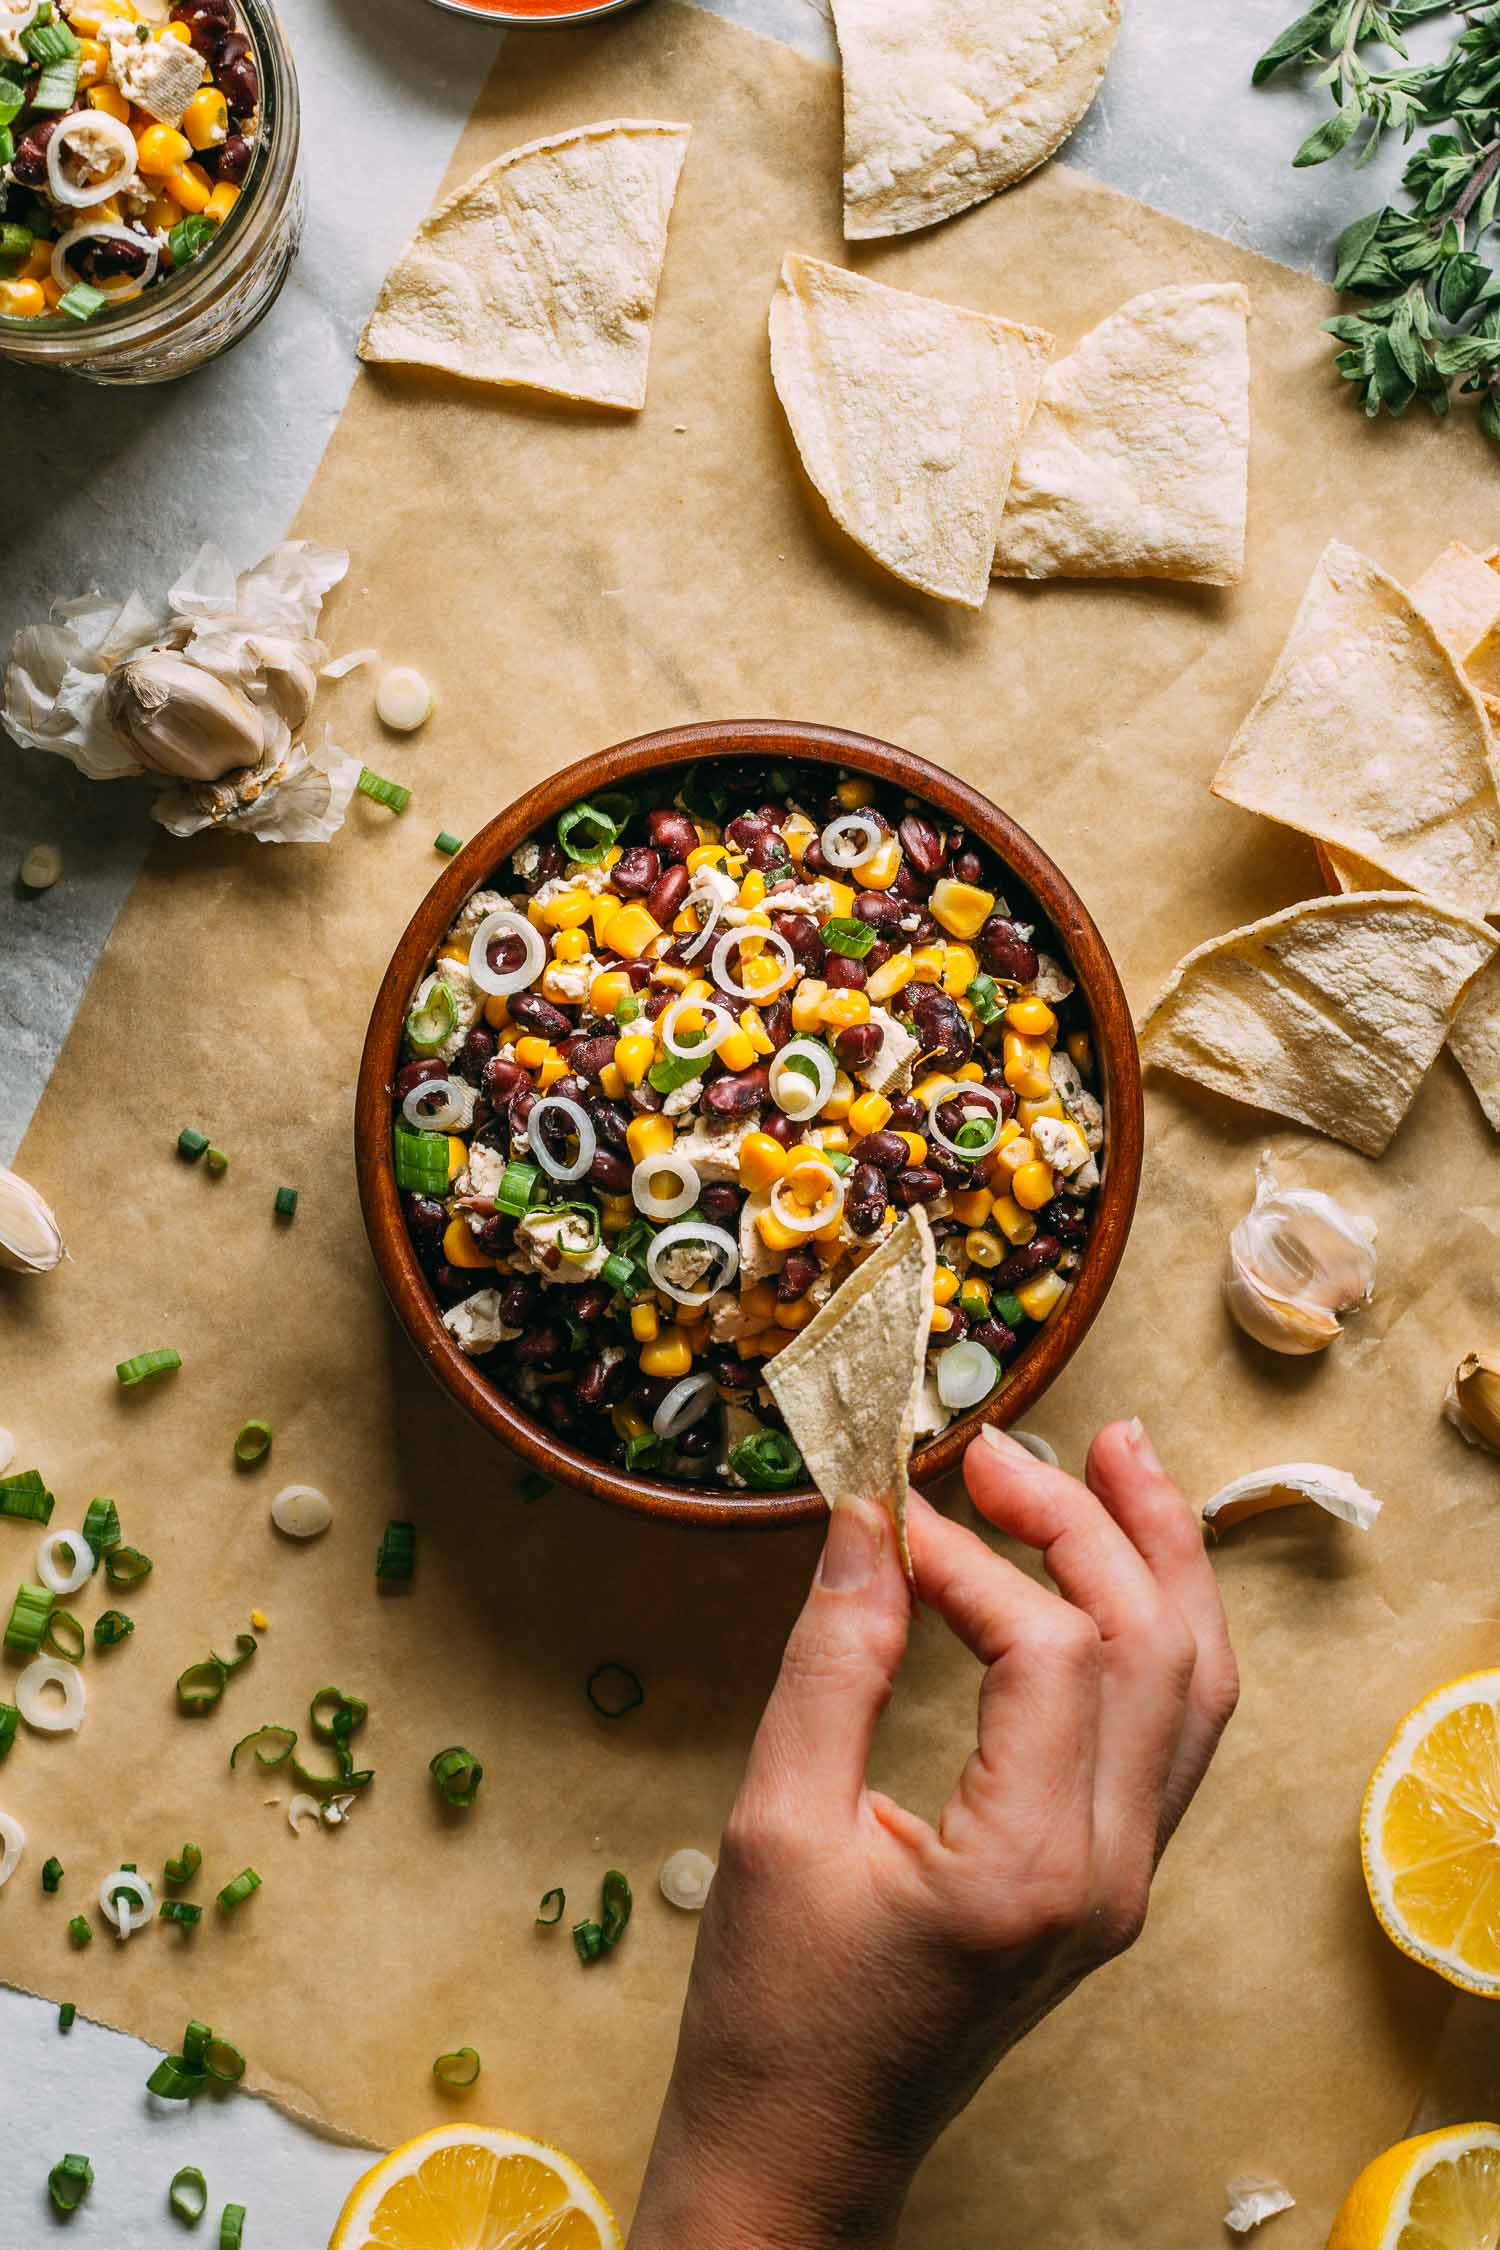 Hippie Harvest Tofu Feta Dip #bean #corn #garlic #tofu #harvest #fall #tailgating #football #party #dip #snack #recipe #plant-based #no-cook #vegan #wfpb #wfpbno #snack #gluten-free #oil-free